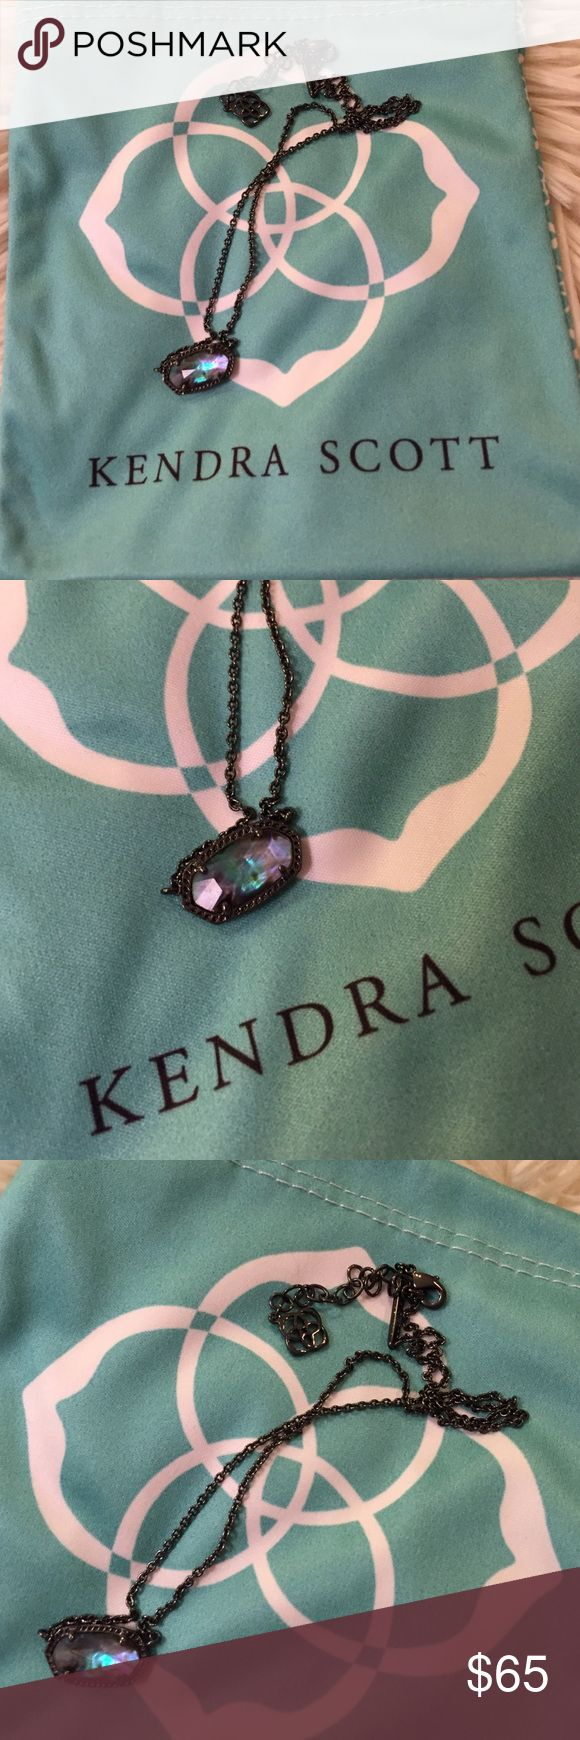 Kendra Scott Elisa necklace - gunmetal/abalone Kendra Scott Elisa necklace. Never worn, exclusive piece! 15in! Comes with KS pouch! Kendra Scott Jewelry Necklaces